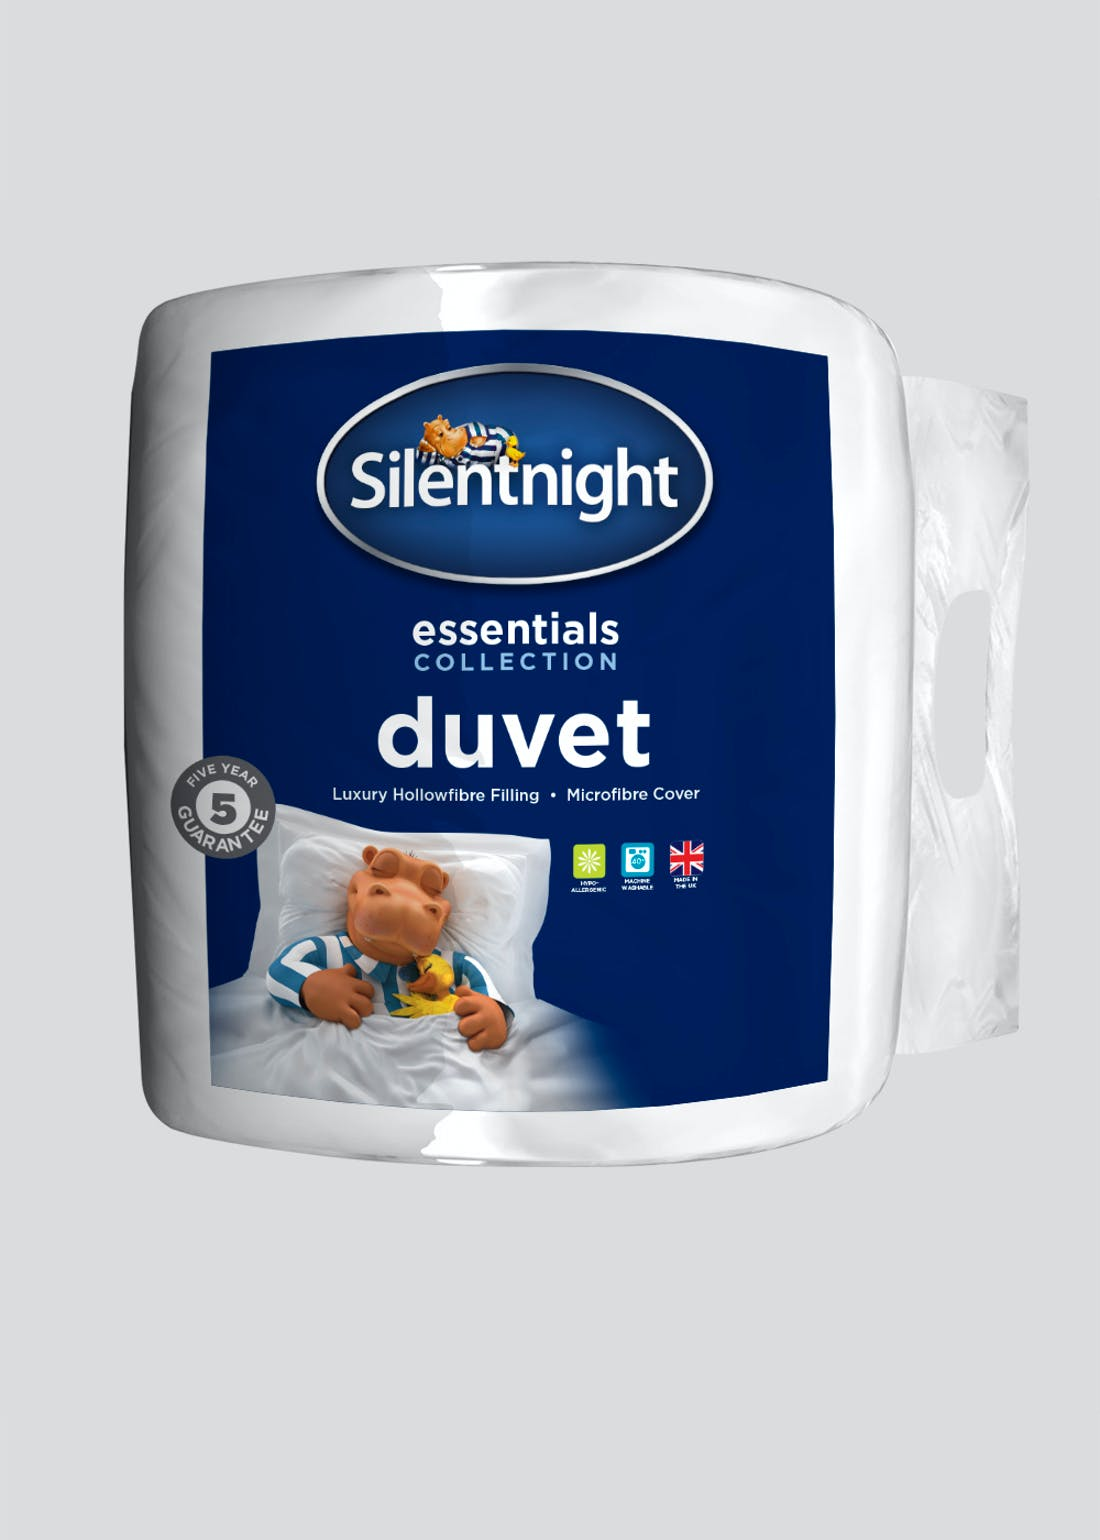 Silentnight Essentials Duvet (10.5 Tog)